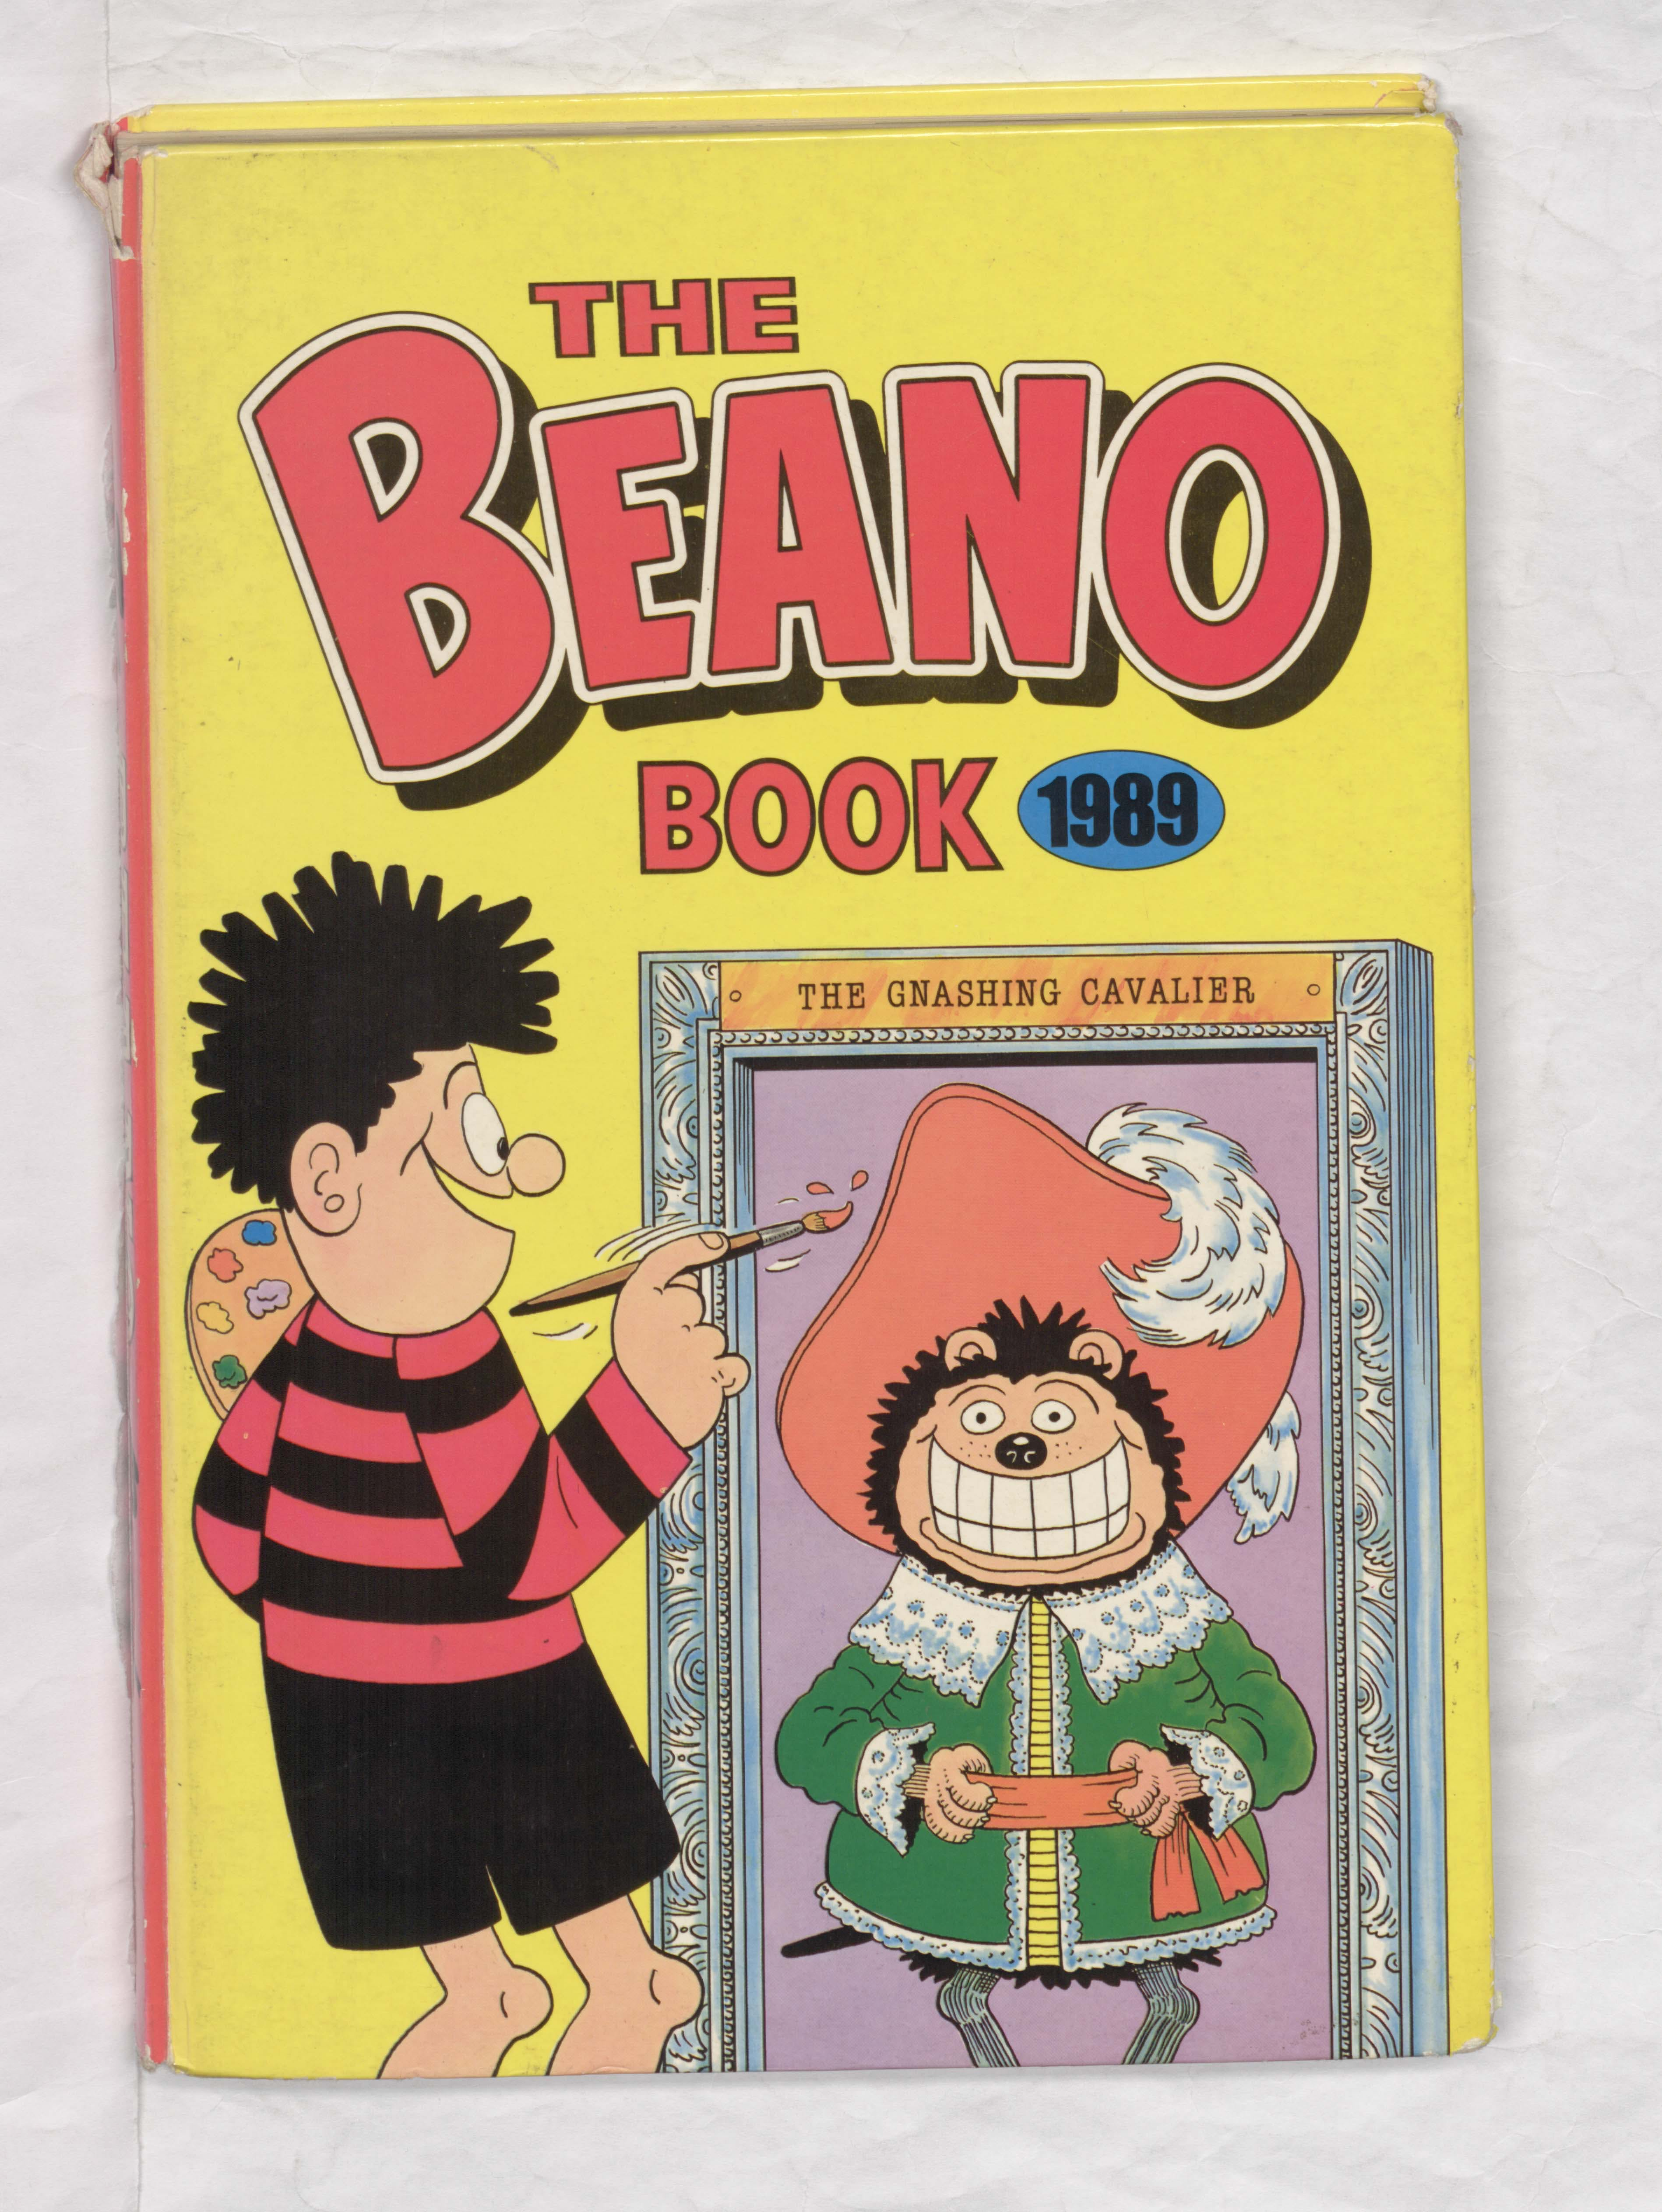 Beano Book 1989 Annual Cover